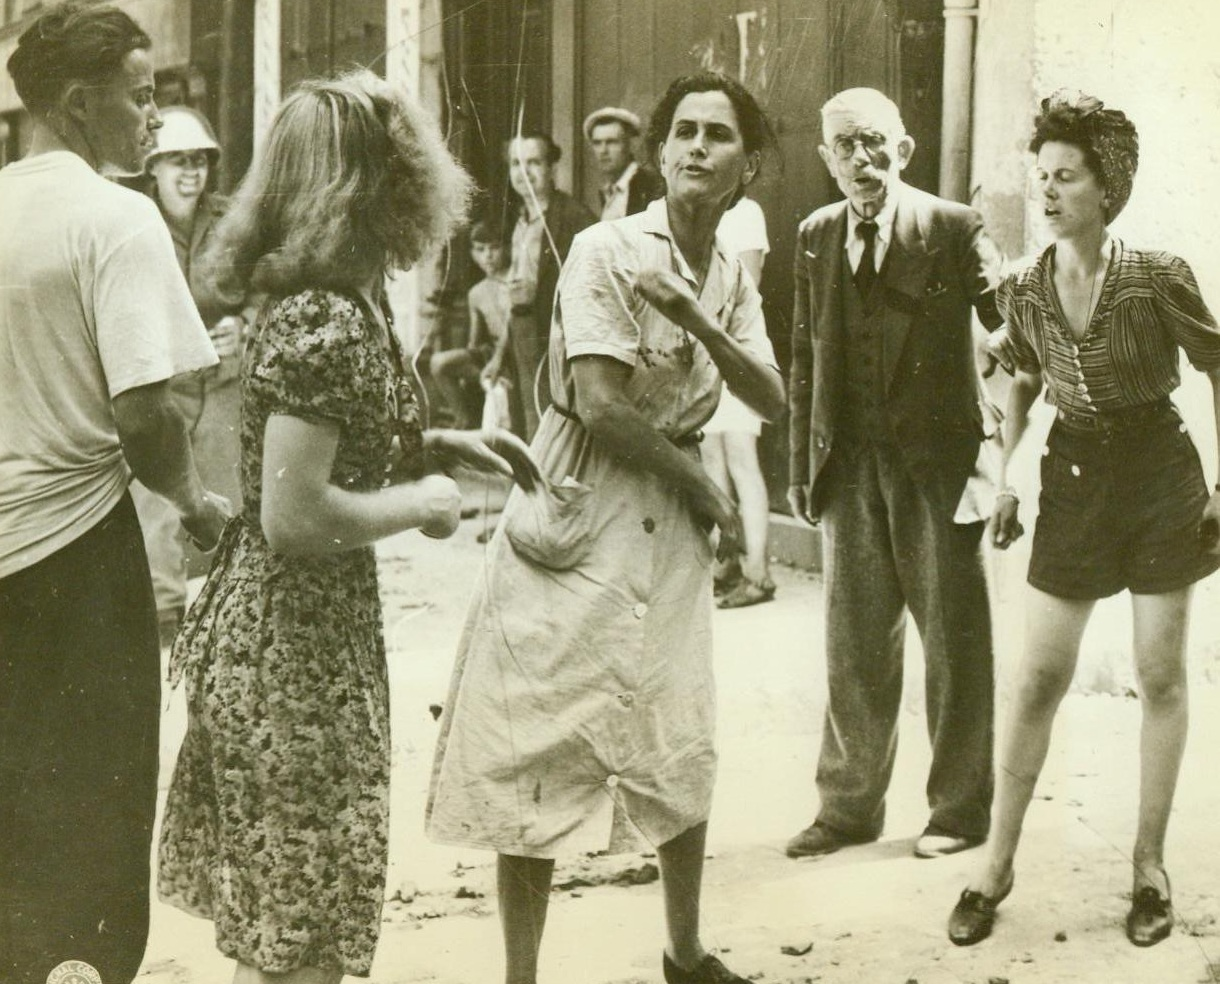 French Women Have It Out, 8/31/1944. France -- Two women, one a pro-Nazi, the other a patriot, engage in a street bout in a town in Southern France. A girl in shorts verbally blasts the Nazi-lover and an old man standing aside adds his thoughts of hatred into the fray. Women in center is object of derisive side glances from all who pass. With the liberation of this town, Brignoles, many of the men and women who were Nazi sympathizers were immediately rounded up by the Free French Partisans. 8/21/44 (ACME);